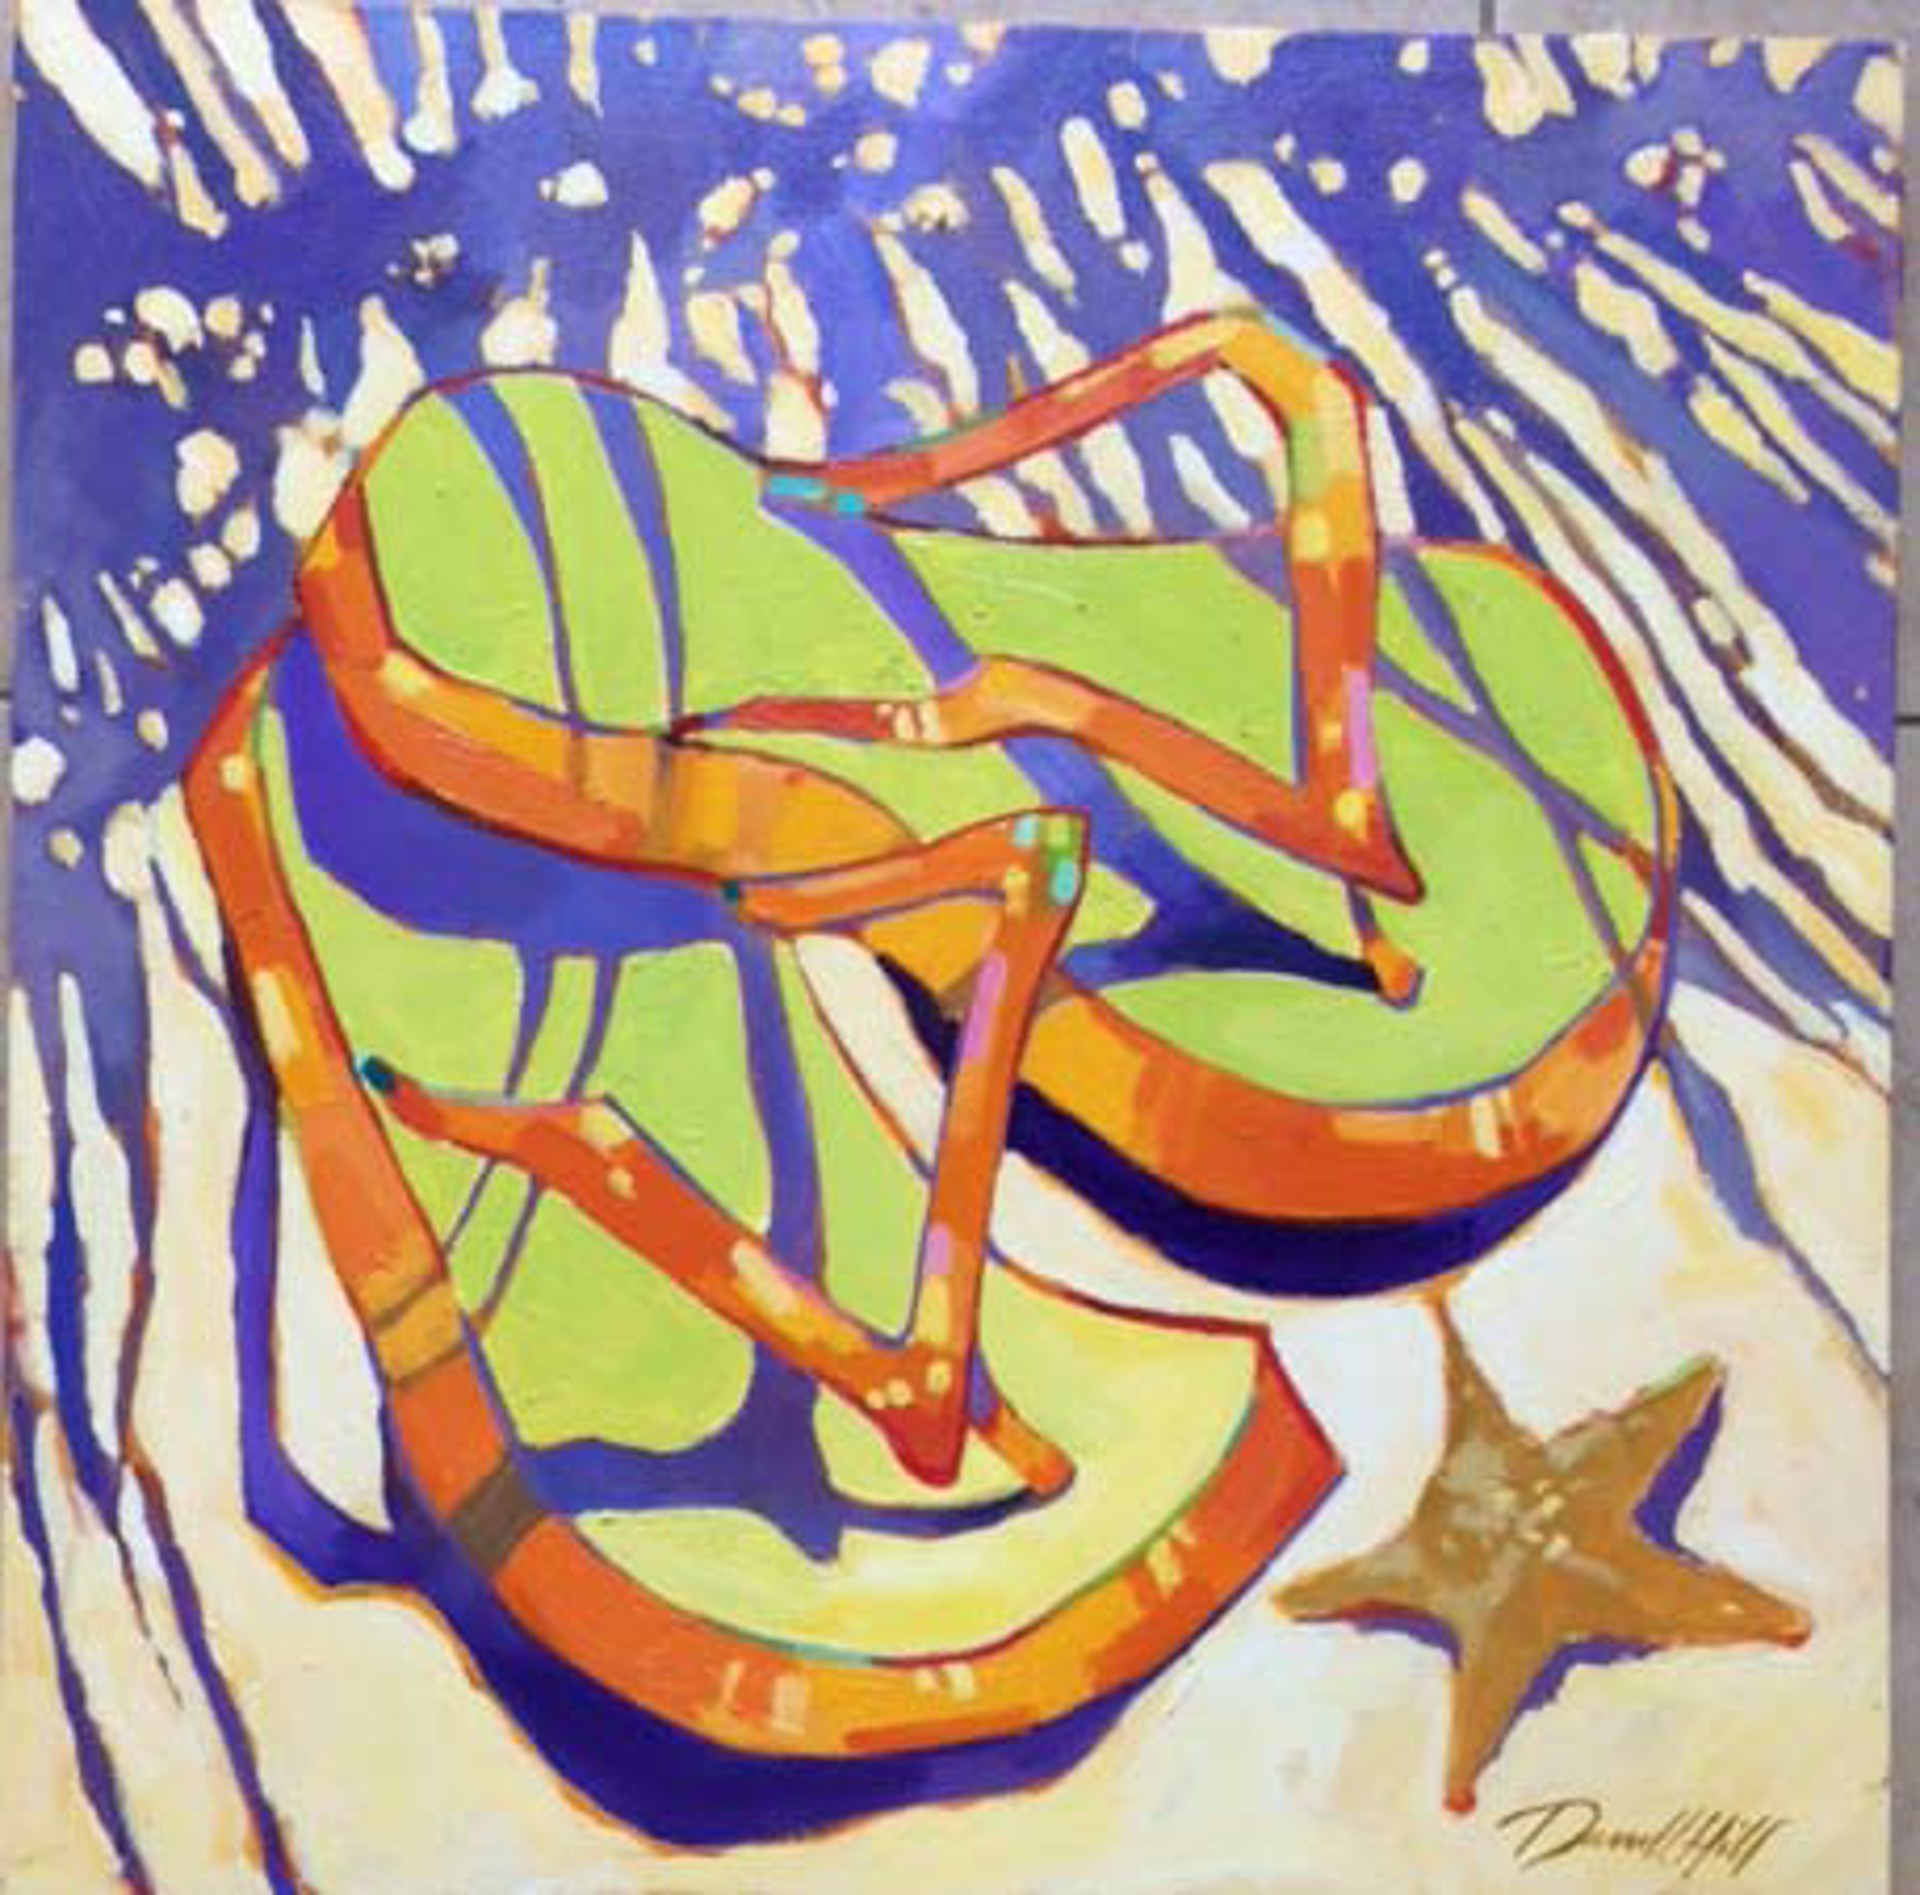 Star Slippers by Darrell Hill